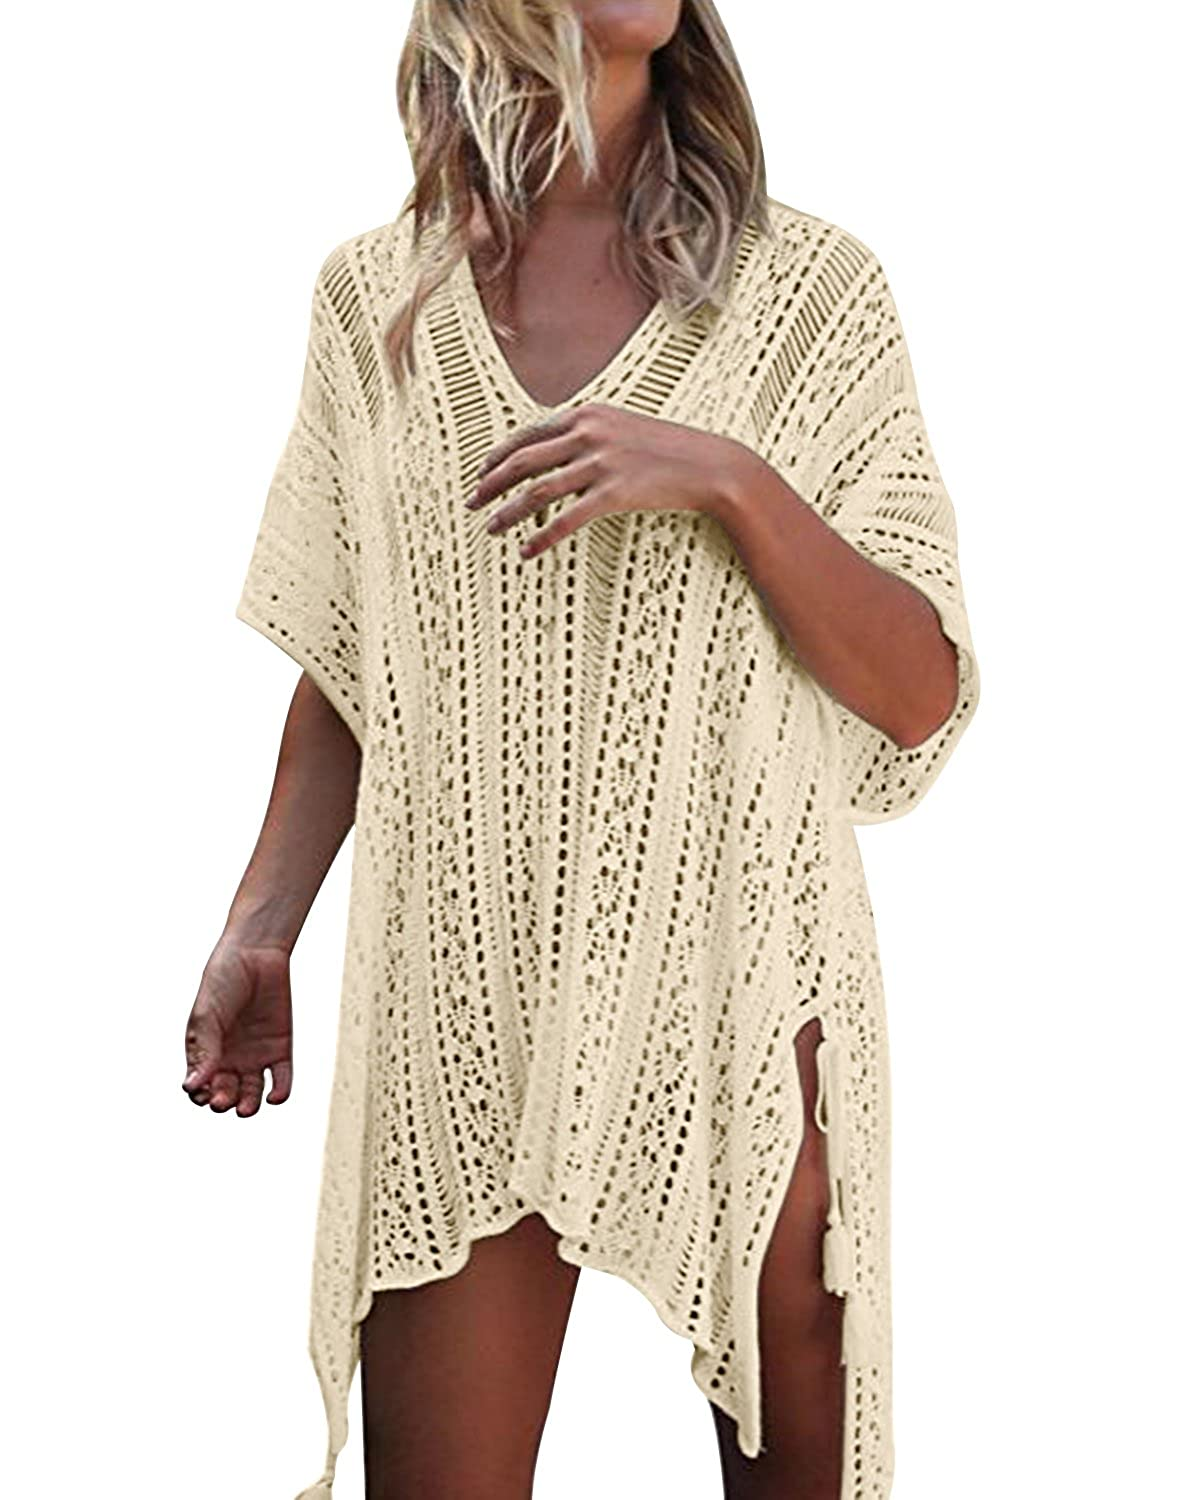 427492da42ce9 Kenoce Women Beach Coverups Hollow Out Swimsuit Oversized 3 4 Bathing Short  Sleeve V Neck Loose Knit Summer Bikini Swimwear Crochet Dress Tassel  Beachwear